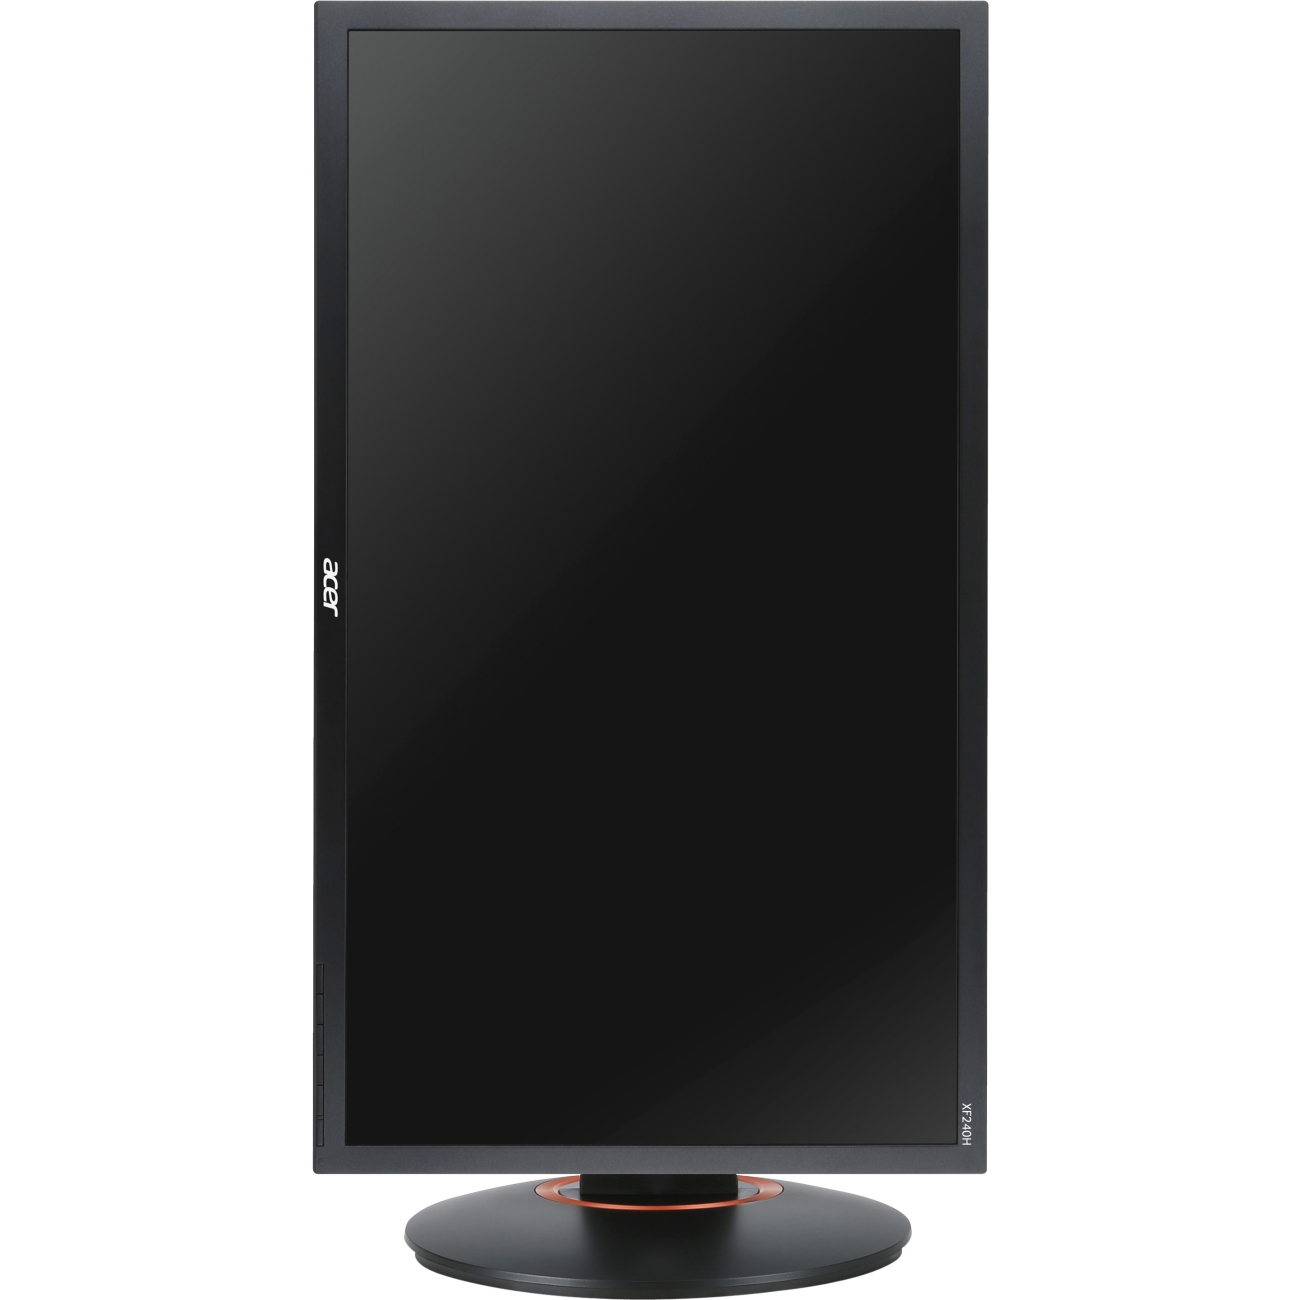 Acer Xf240h 24